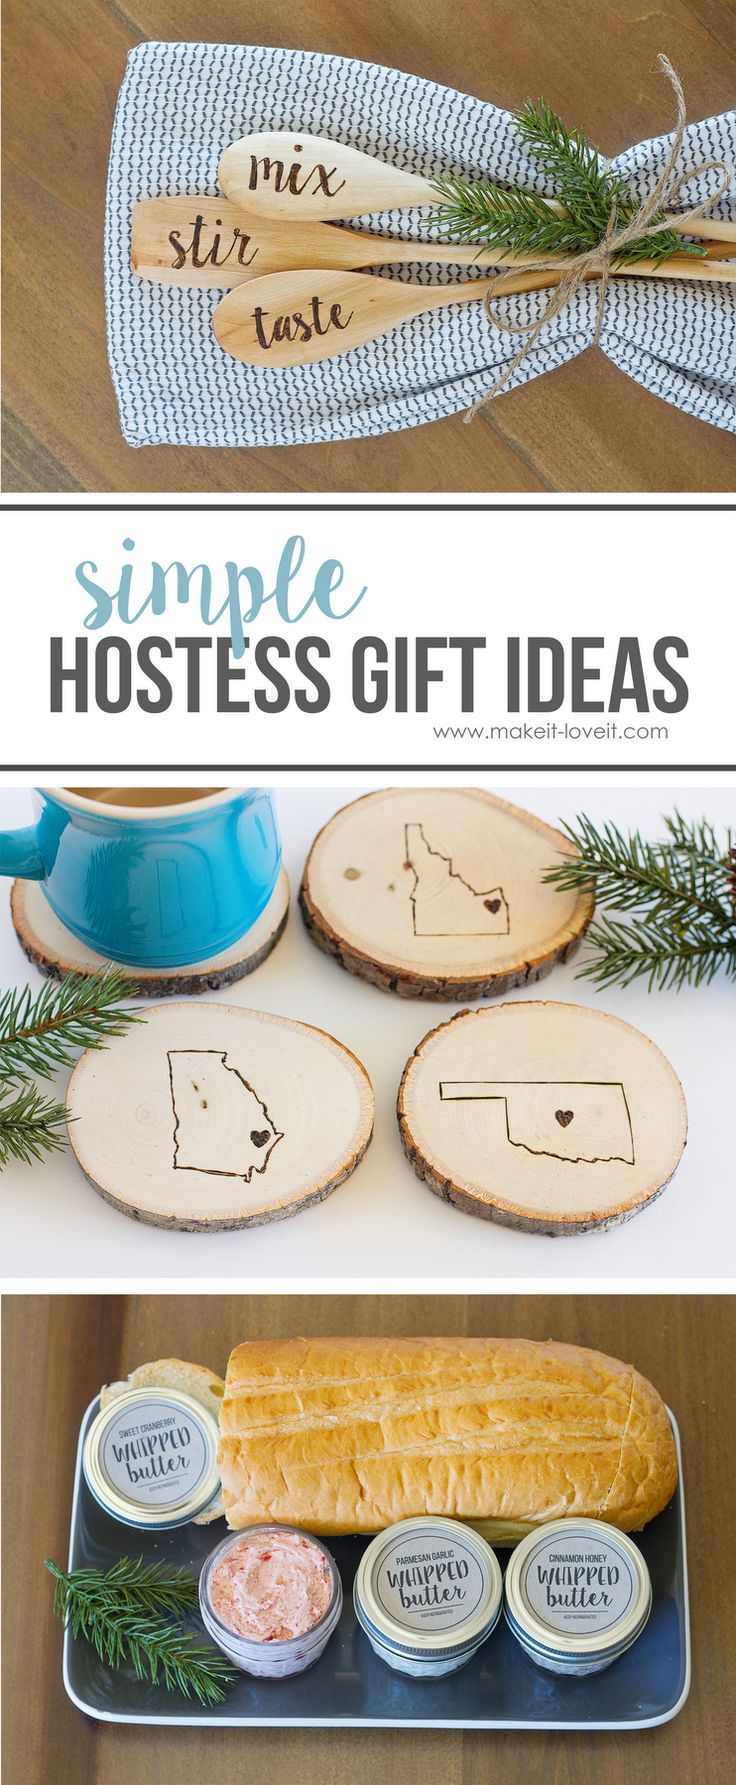 Simple DIY Hostess Gift Ideas...Flavored Whipped Butter, Engraved Home State Coasters, & Engraved Wooden Spoons | via Make It and Love It